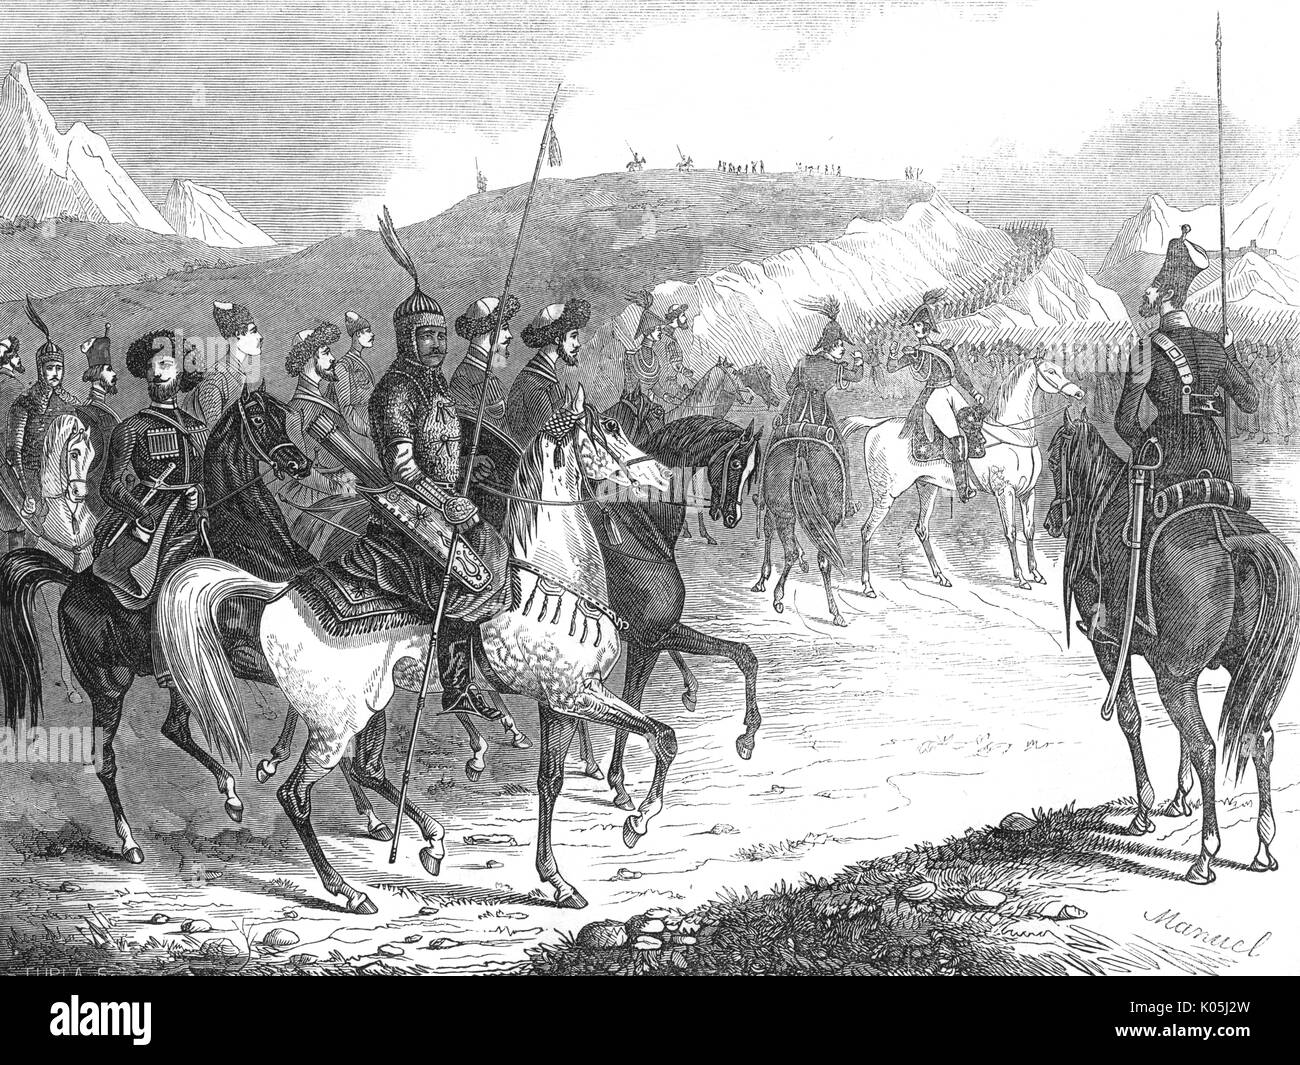 Russian troops assemble for  the Caucasus campaign.         Date: 1846 - Stock Image